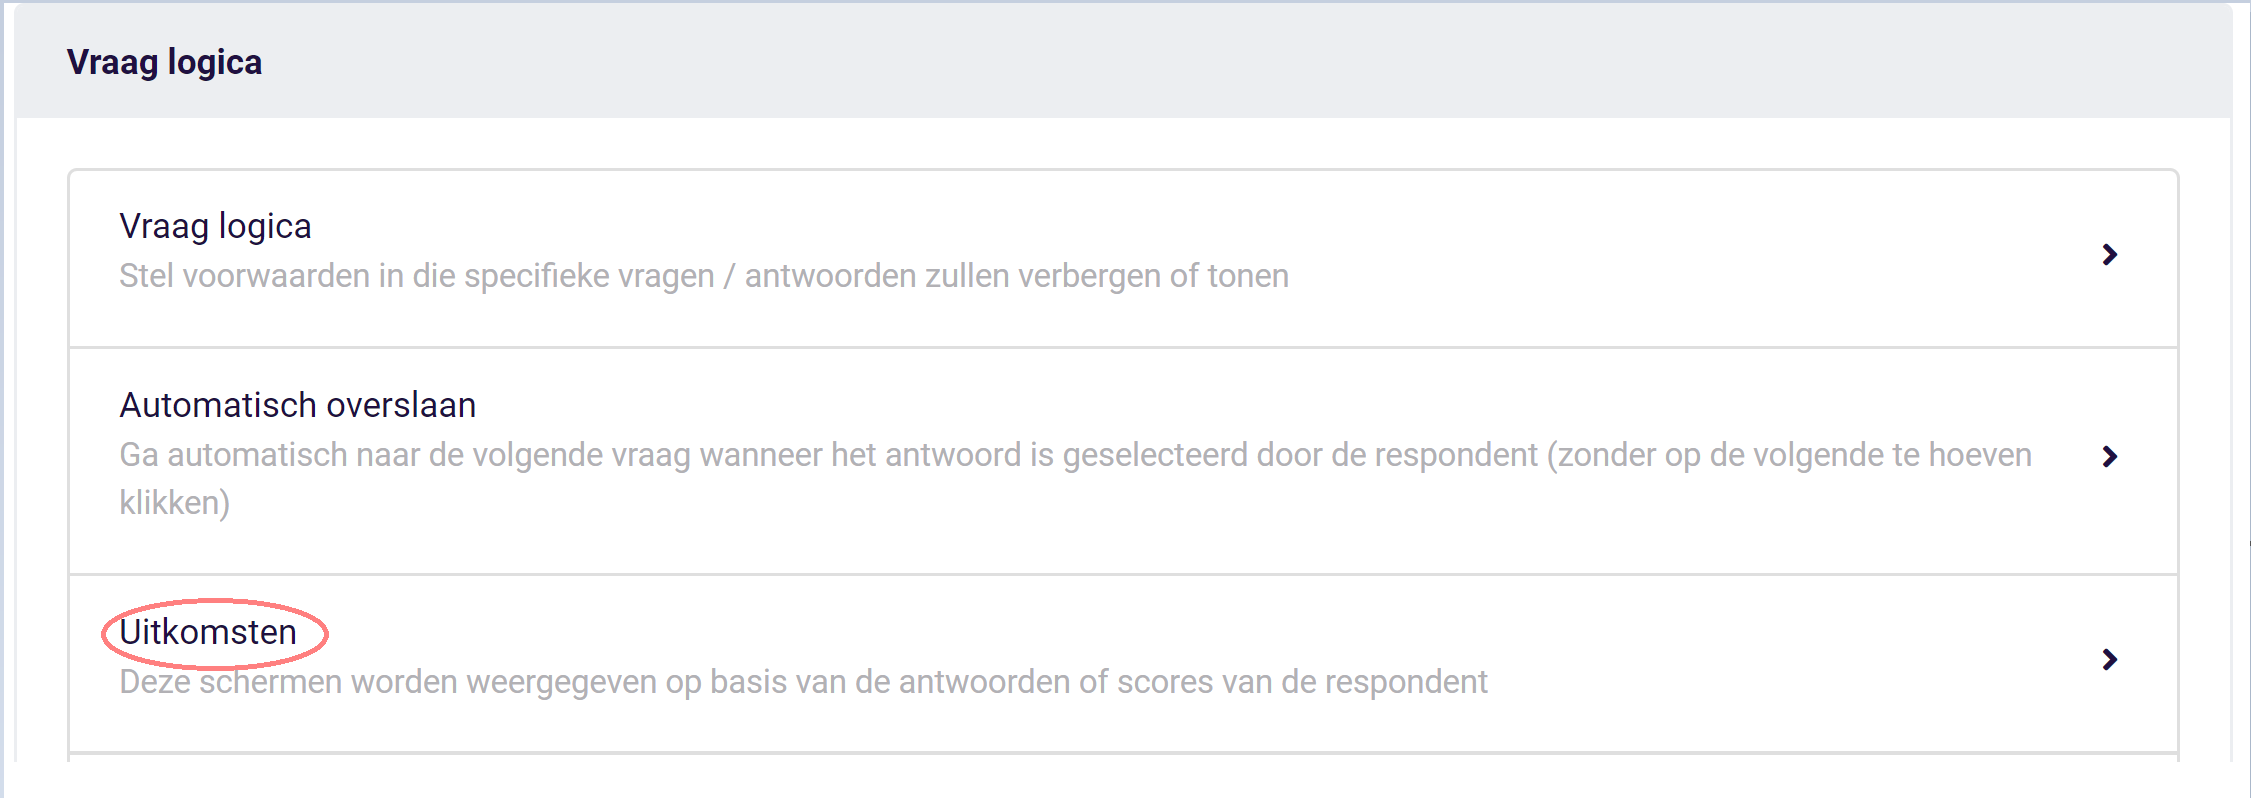 Assessment - uitkomsten